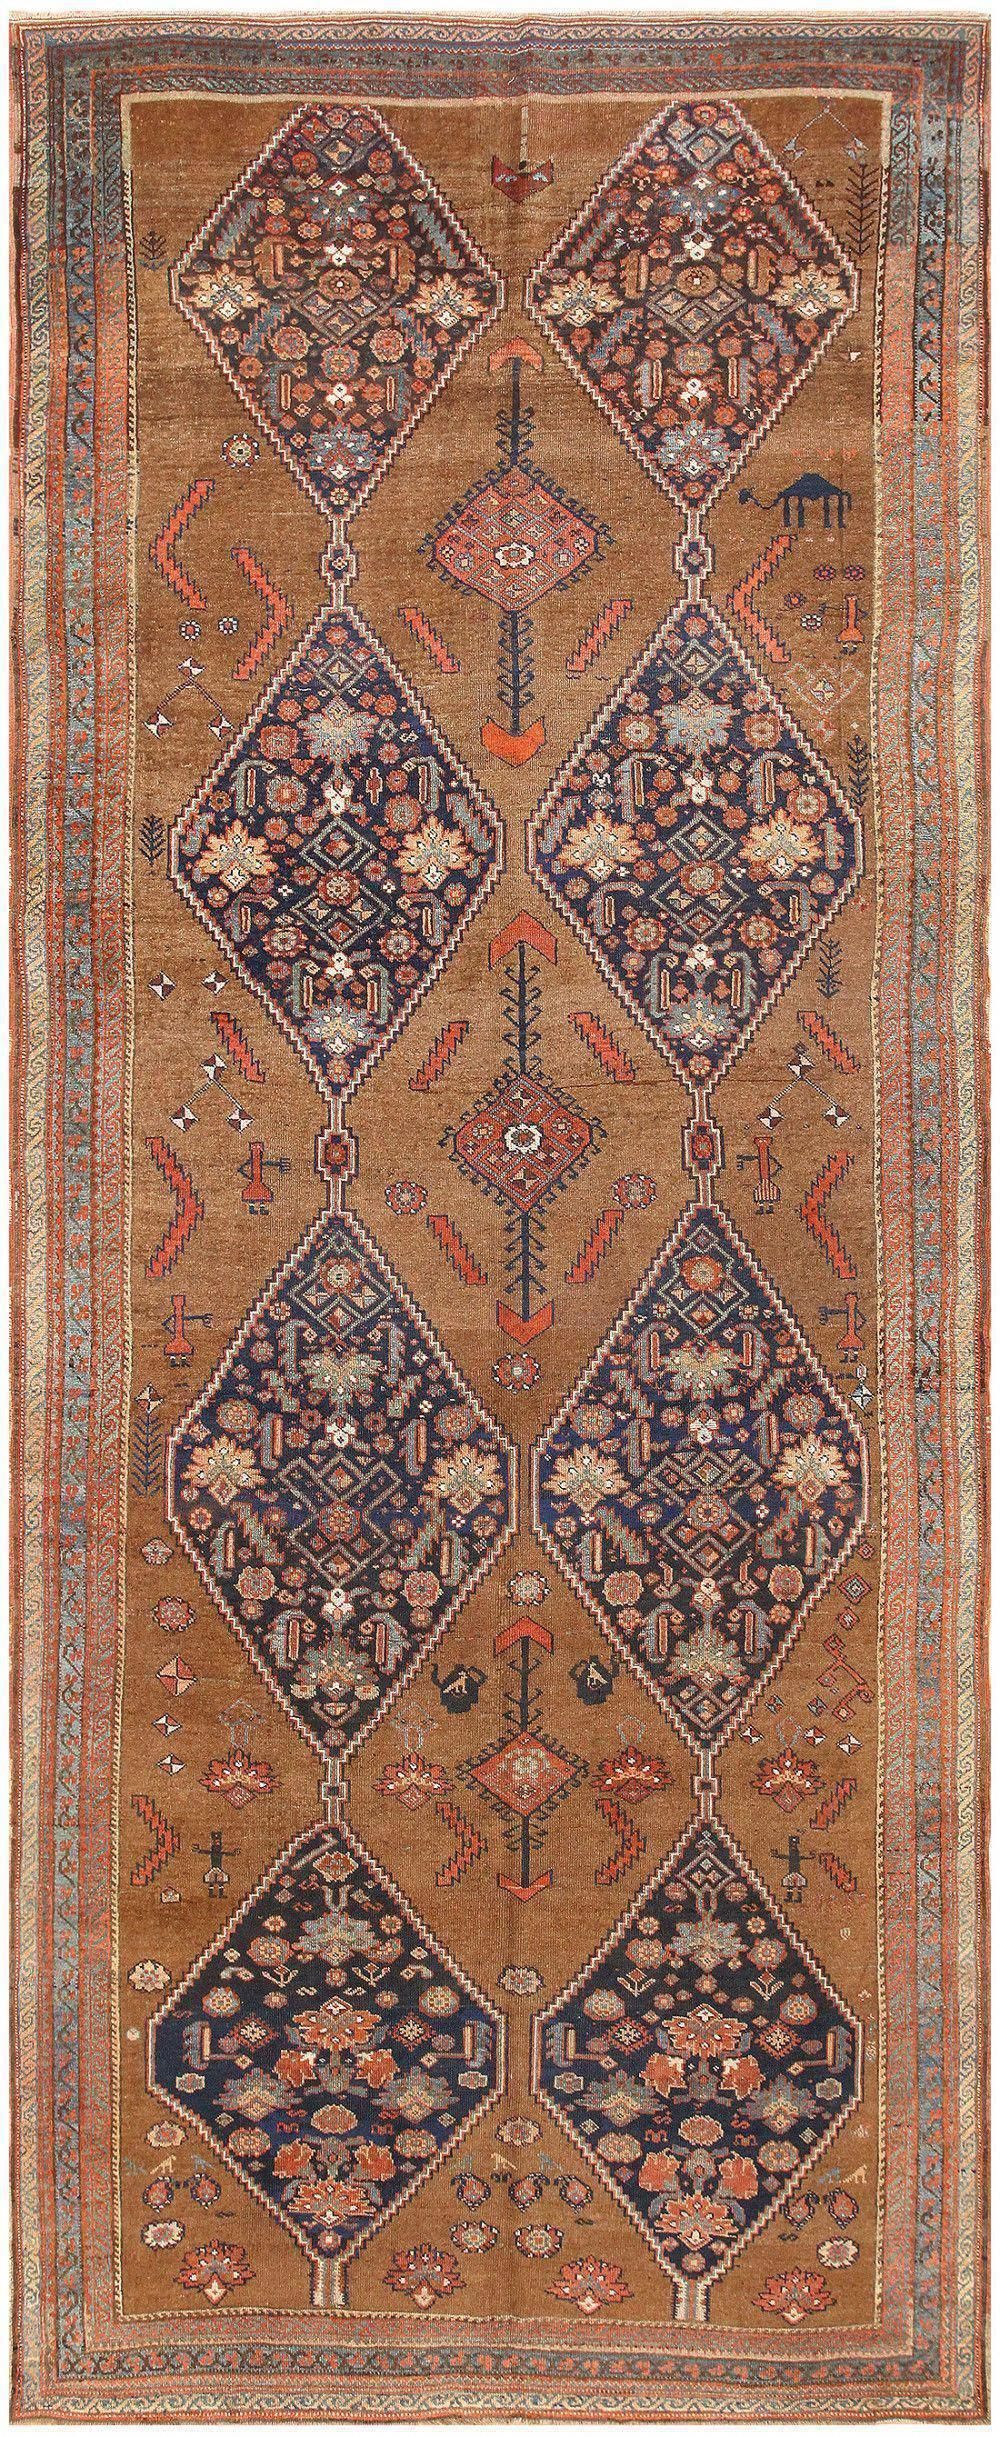 Good Free of Charge Persian Carpet modern Popular Every city in Iran features a ,   shag carpets ideas #Carpet #browncarpettexture #carpet #Charge #city #features #Free #Good #Iran #Modern #Persian #Popular